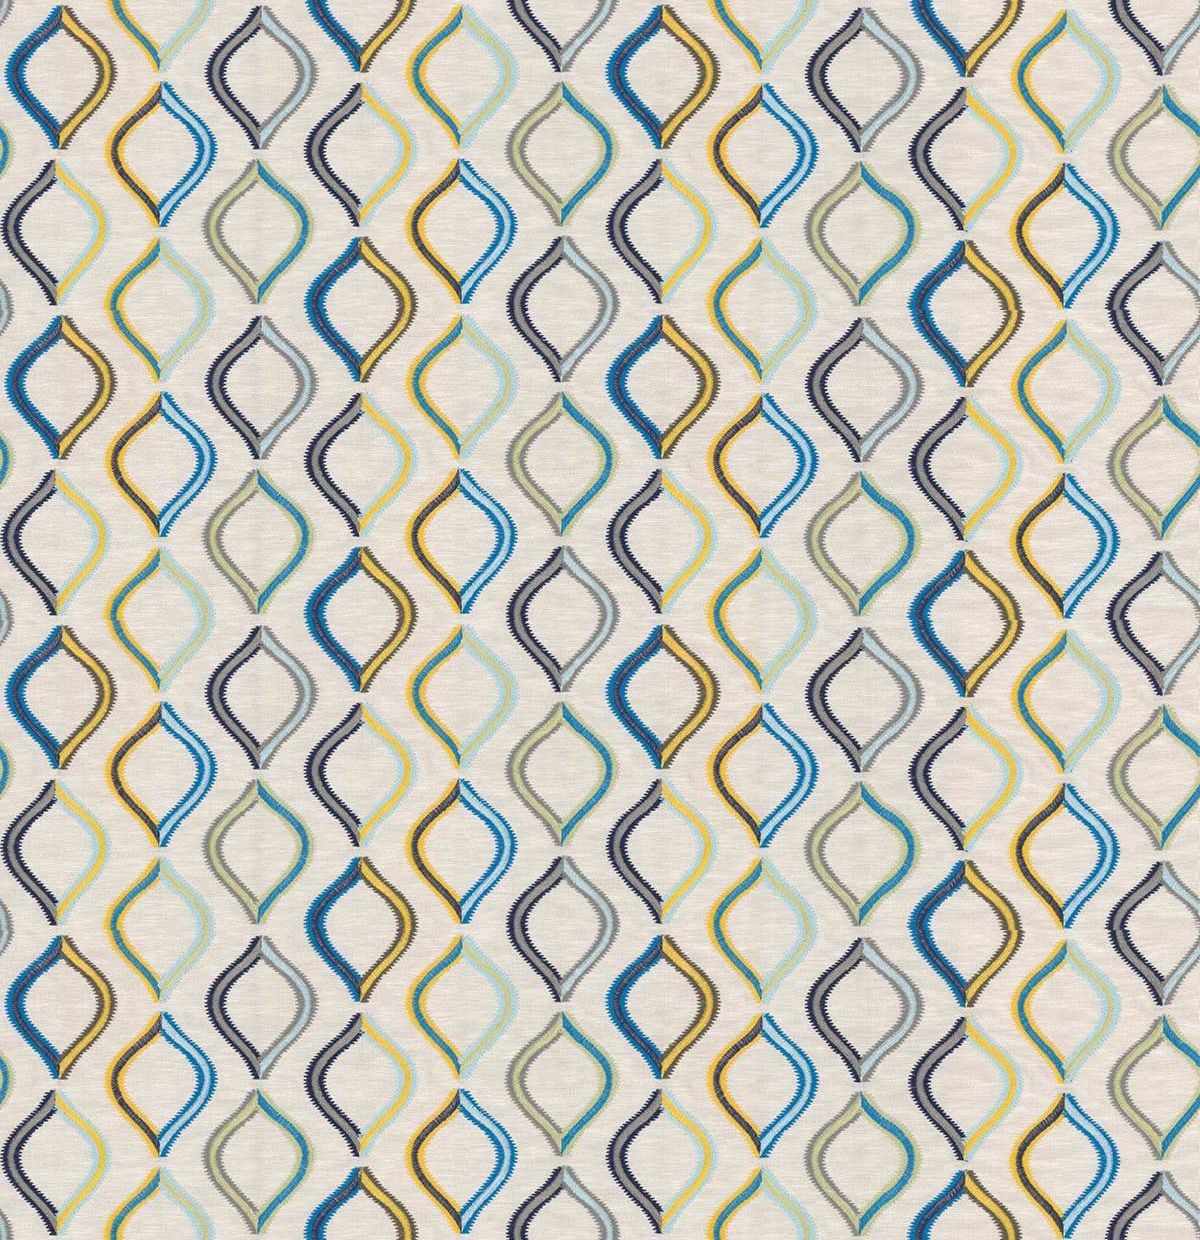 Spinning Top Fabric - Reef - by Prestigious